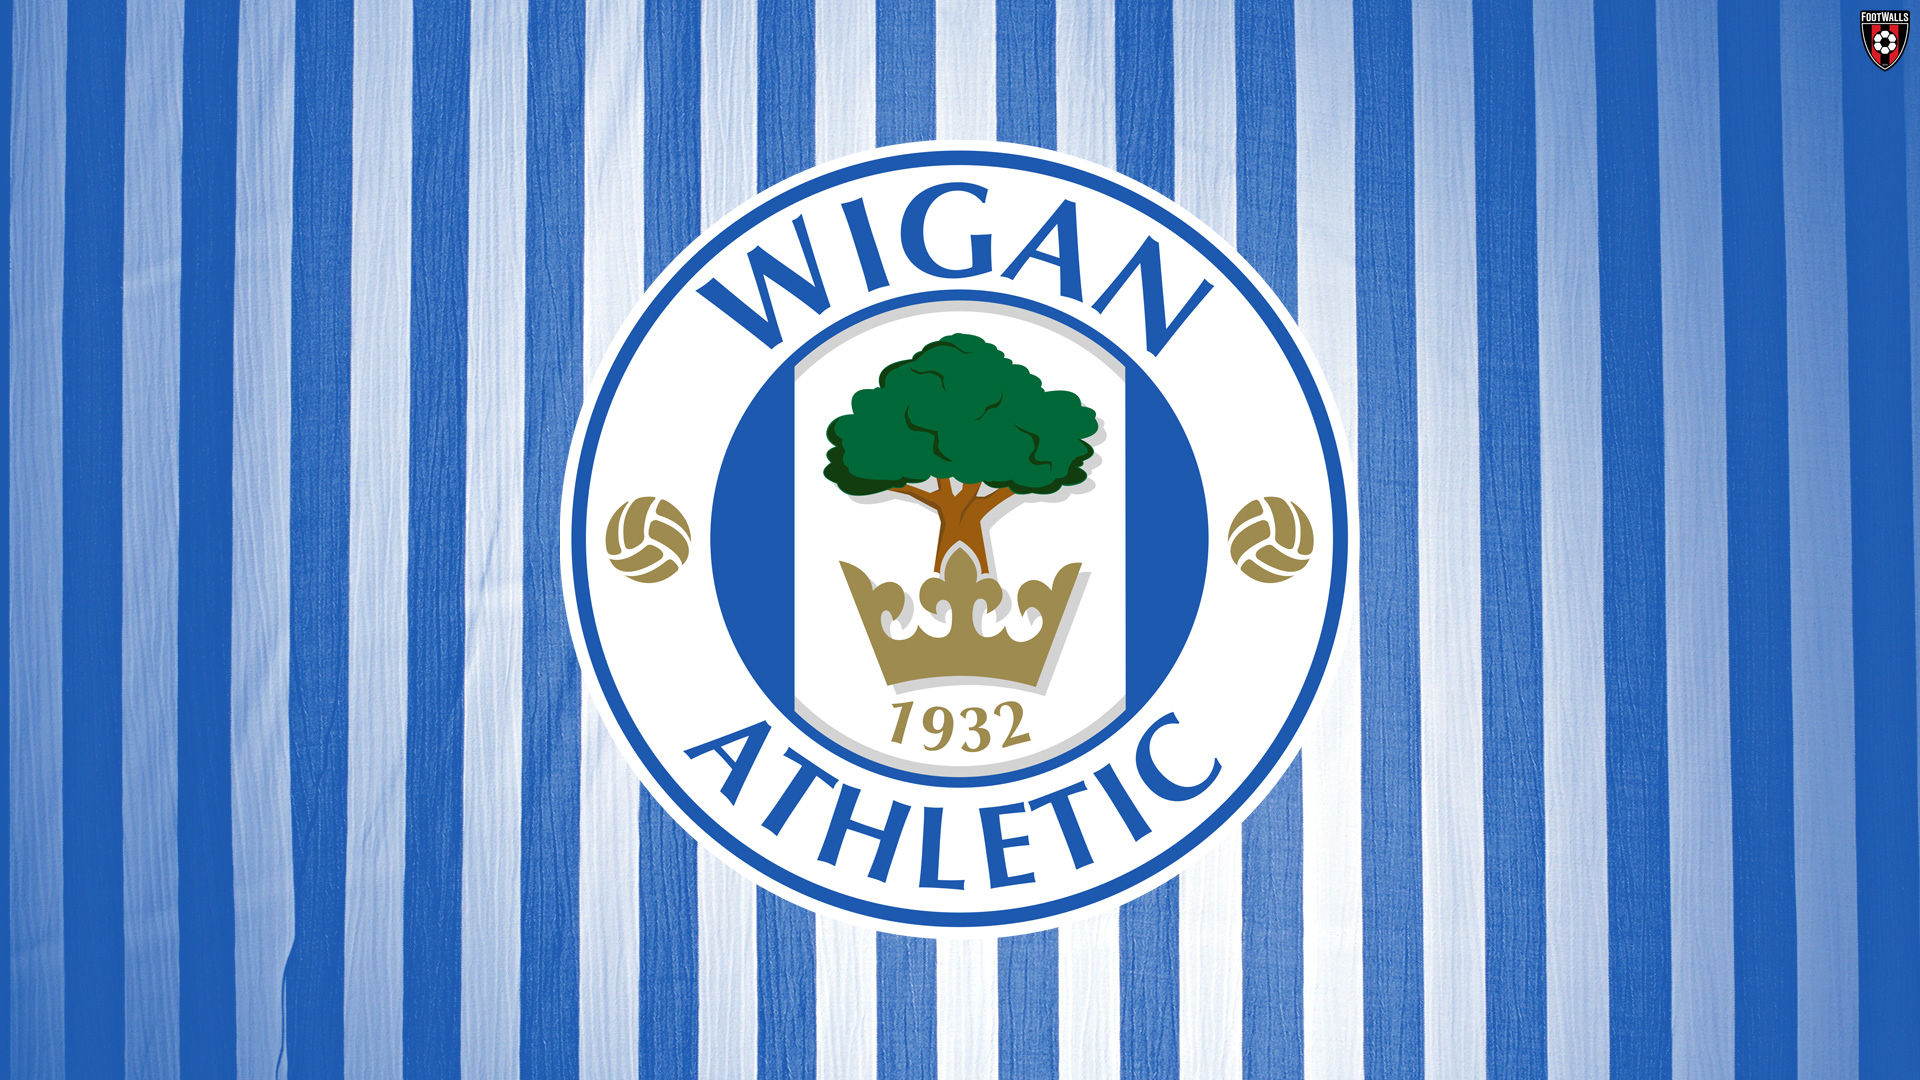 Wallpaper Manchester United Hd Wigan Athletic Wallpapers Clubs Football Wallpapers